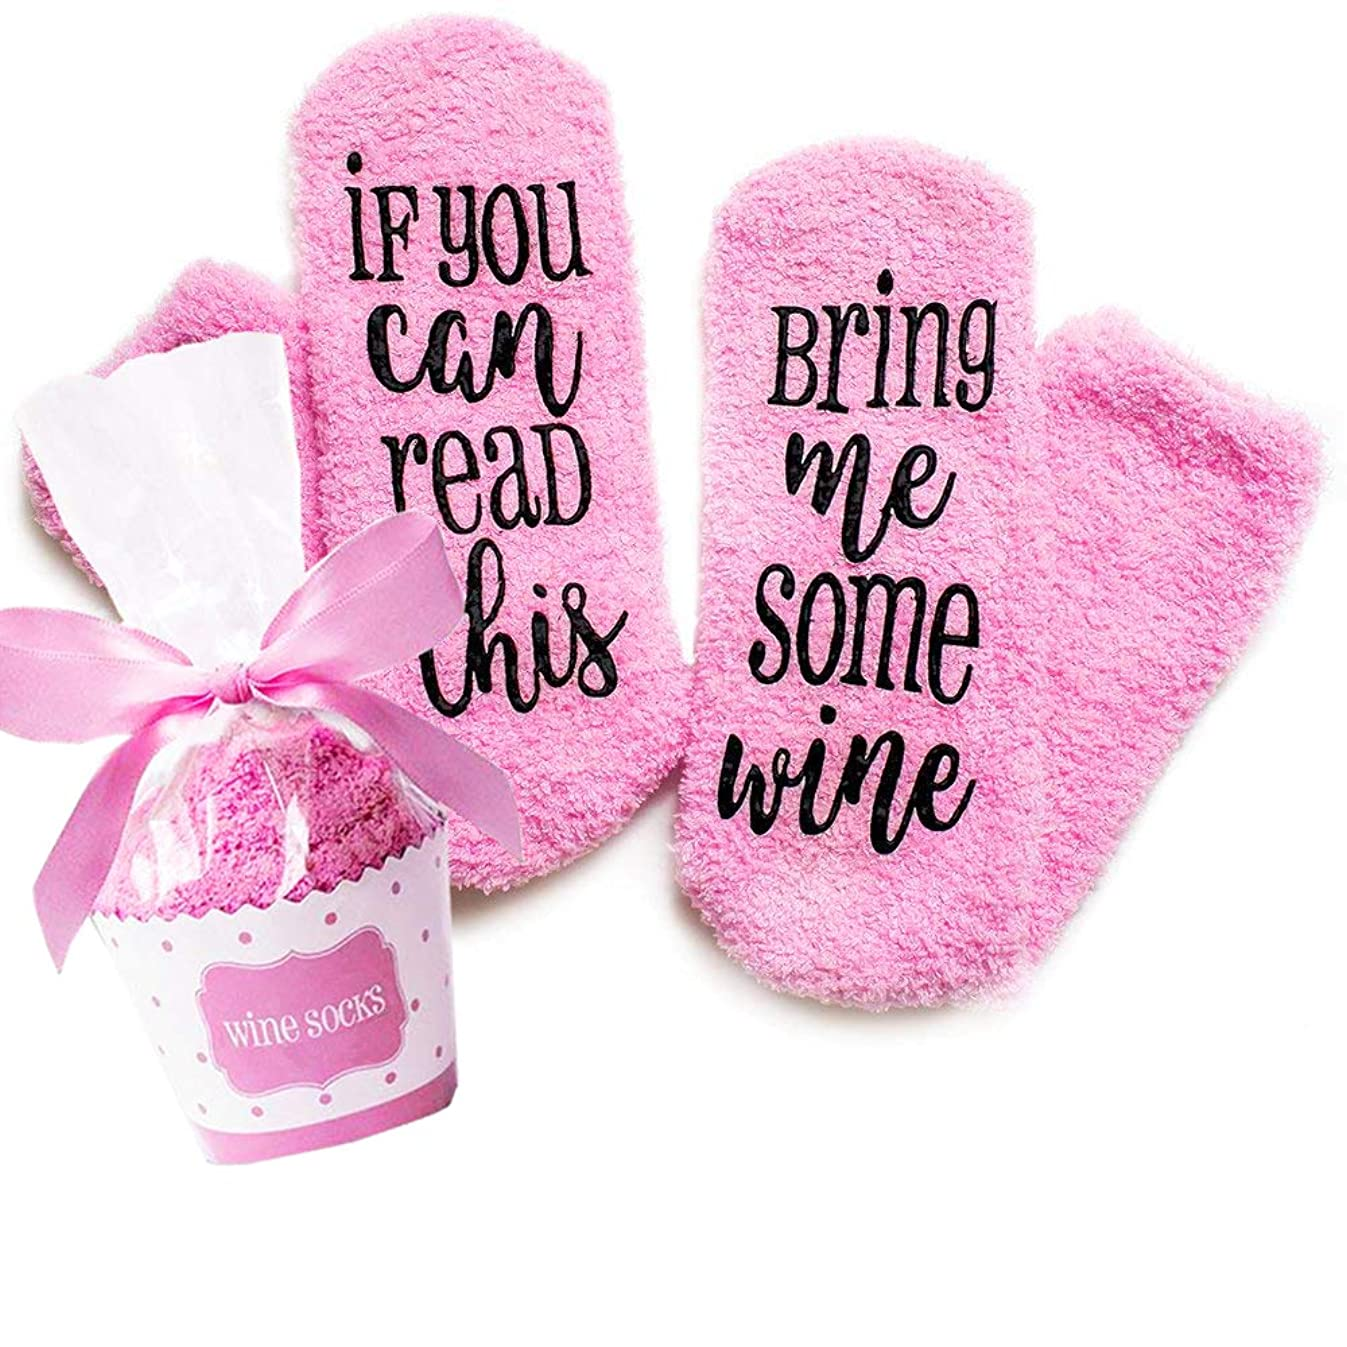 Xpeciall Gift Wine Socks If You Can Read This Bring Me Some Wine Funny Novelty Luxury Socks - Wine Lovers Gifts for Women Under 25 Dollars (Pink)